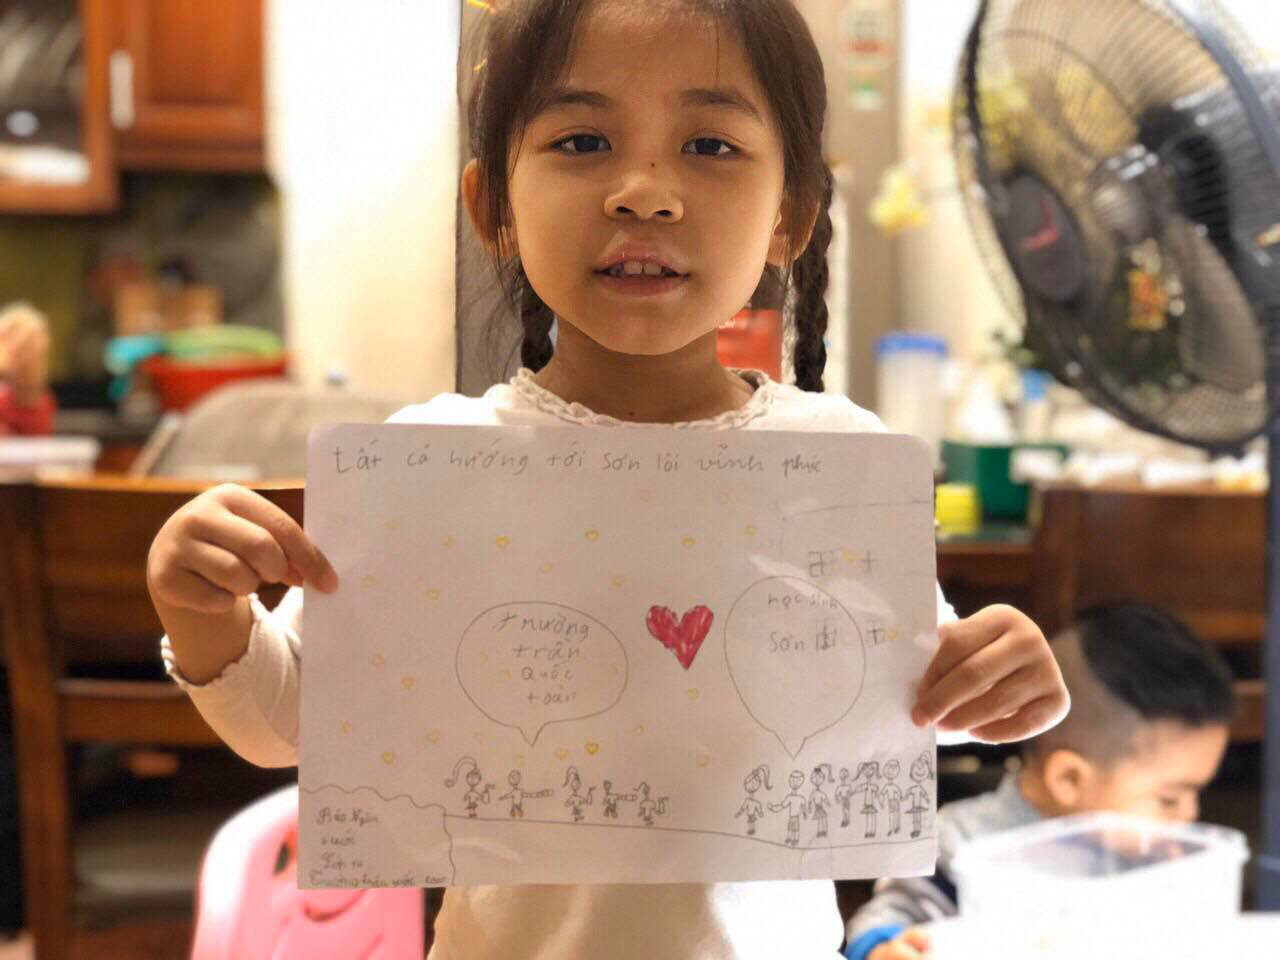 'Hang in there': Hanoi first graders pen heartfelt letters to peers in COVID-19 epicenter